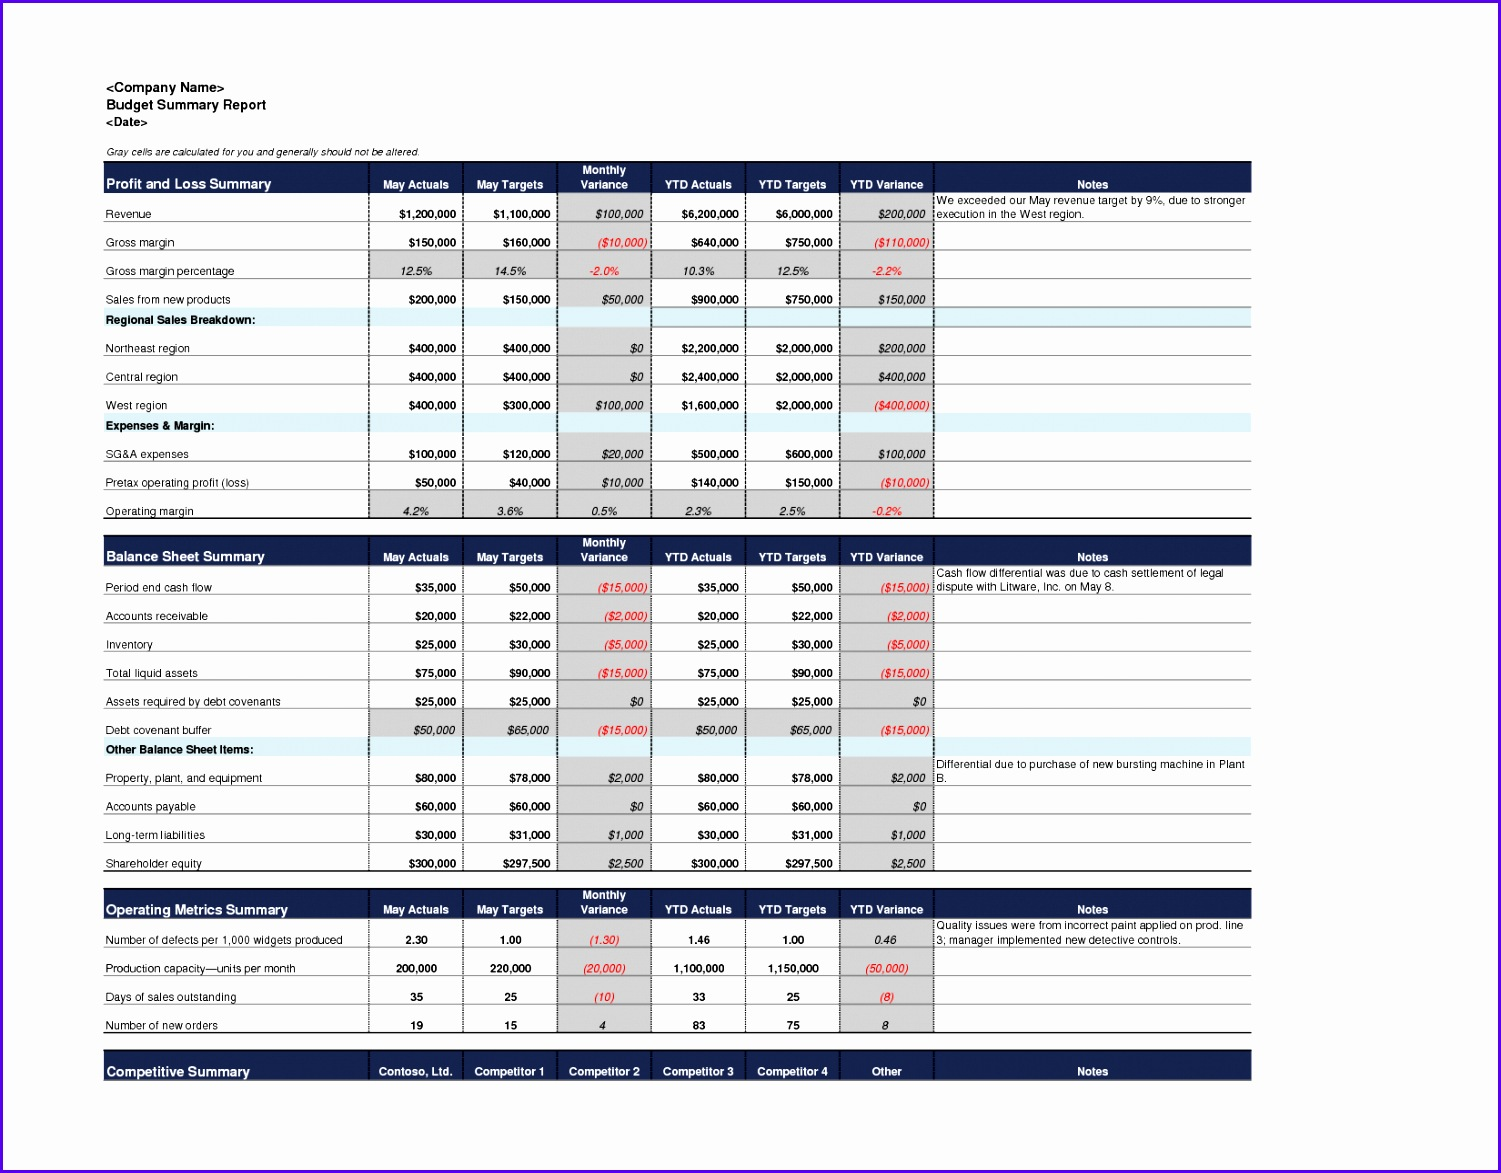 12 excel expense templates exceltemplates exceltemplates bud summary report excel template by ronviers36 aant7k5c 15011173 excel reporting templatesexcel expense templates alramifo Image collections